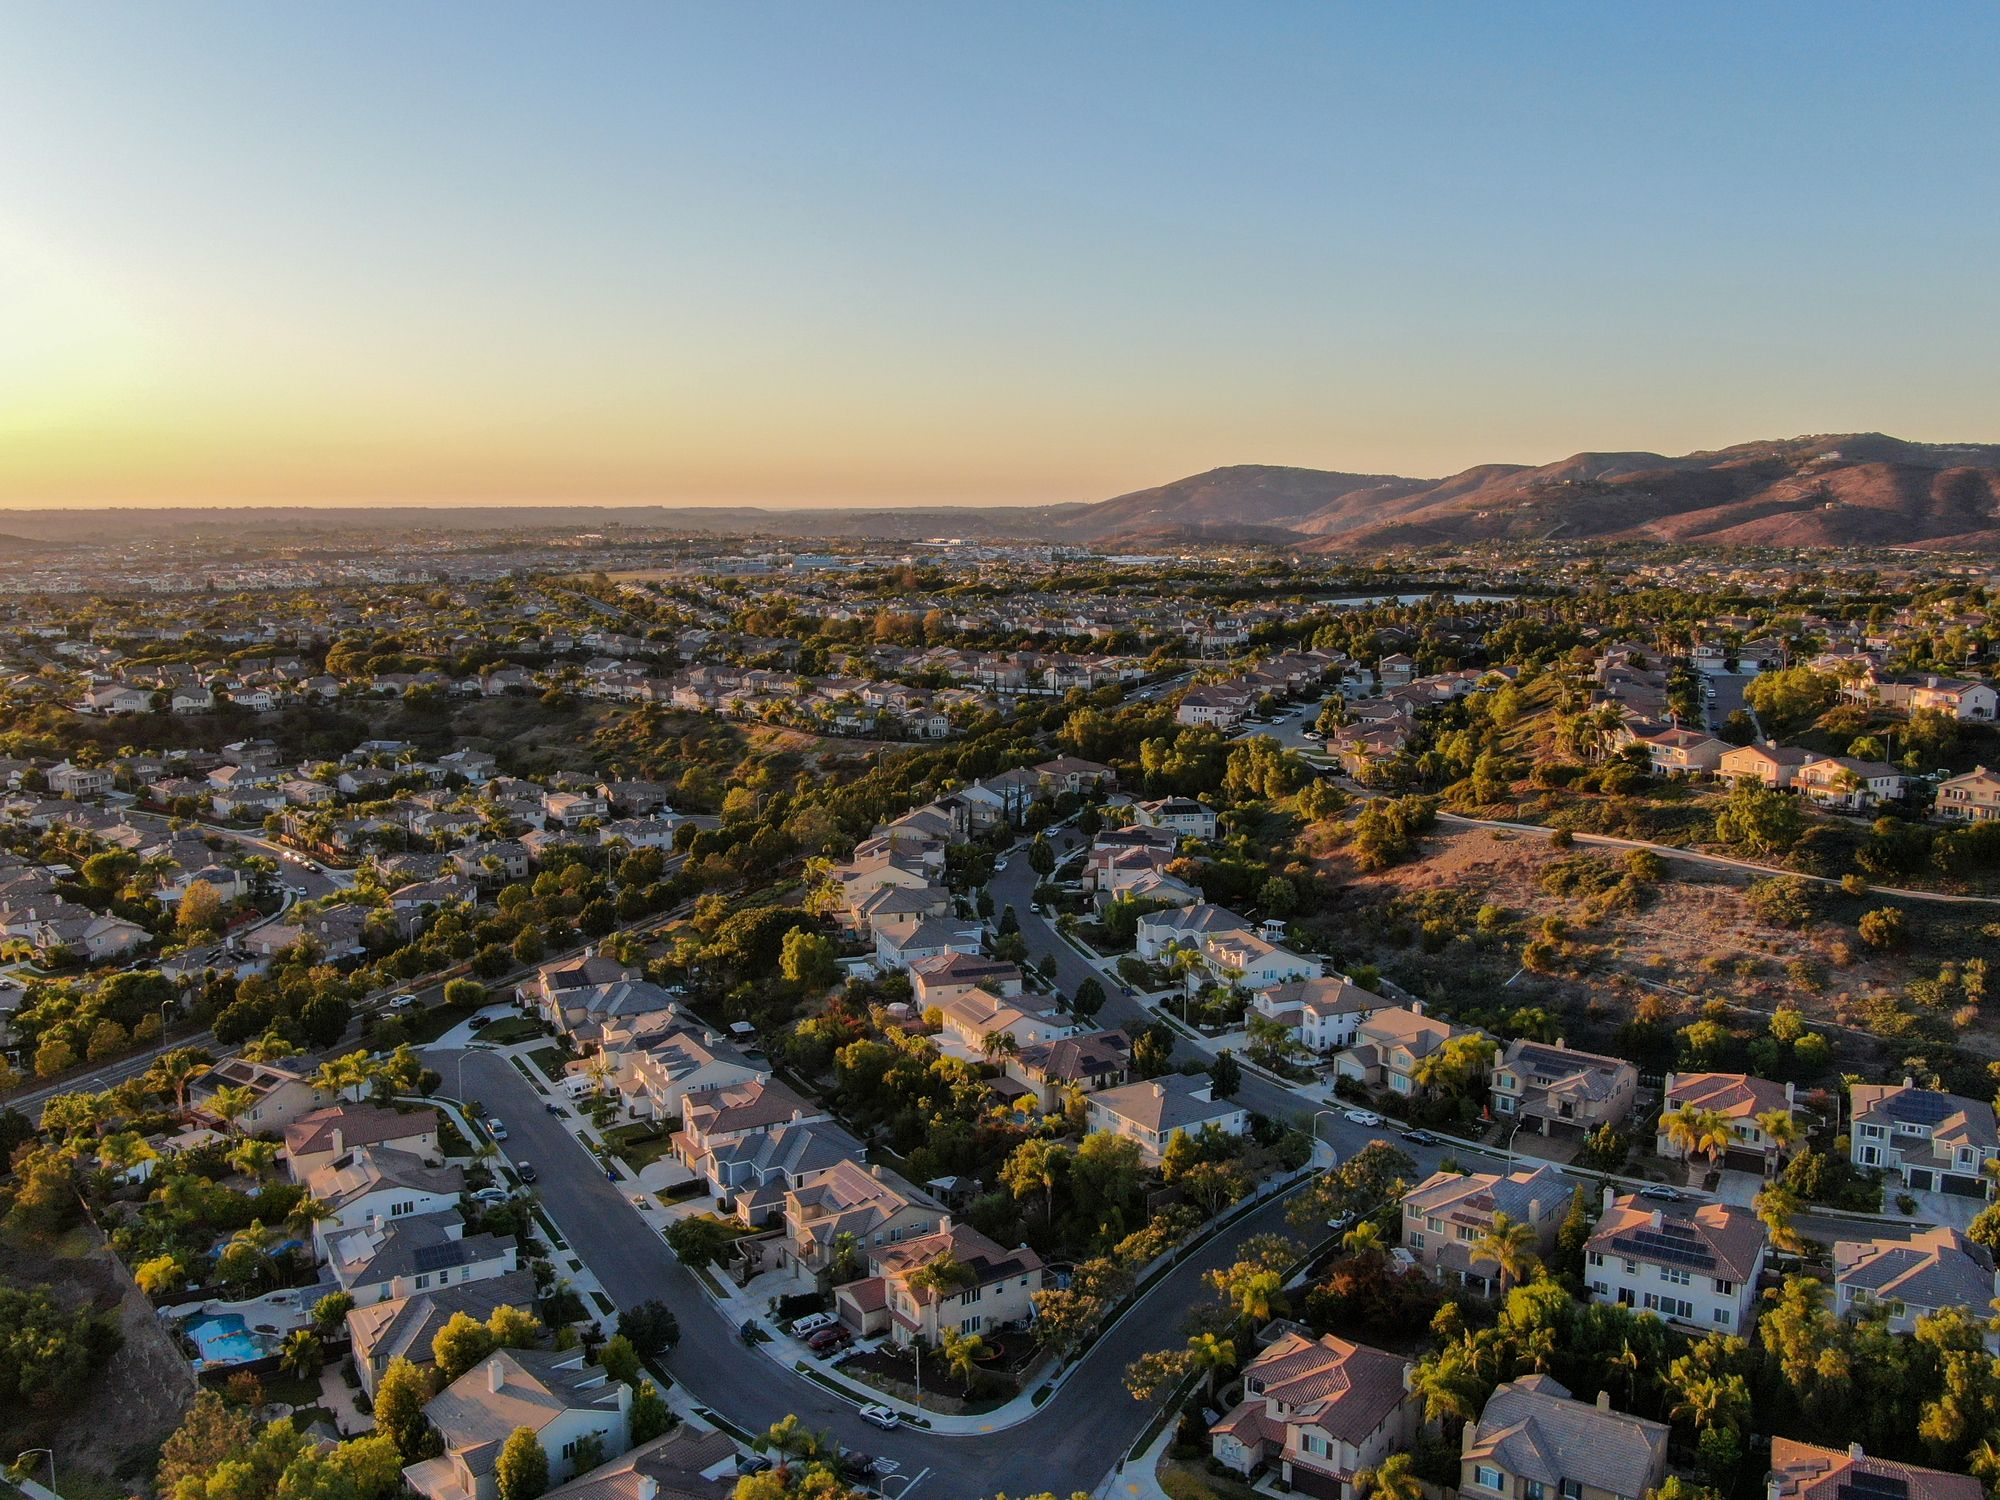 Neighborhood aerial view at dusk